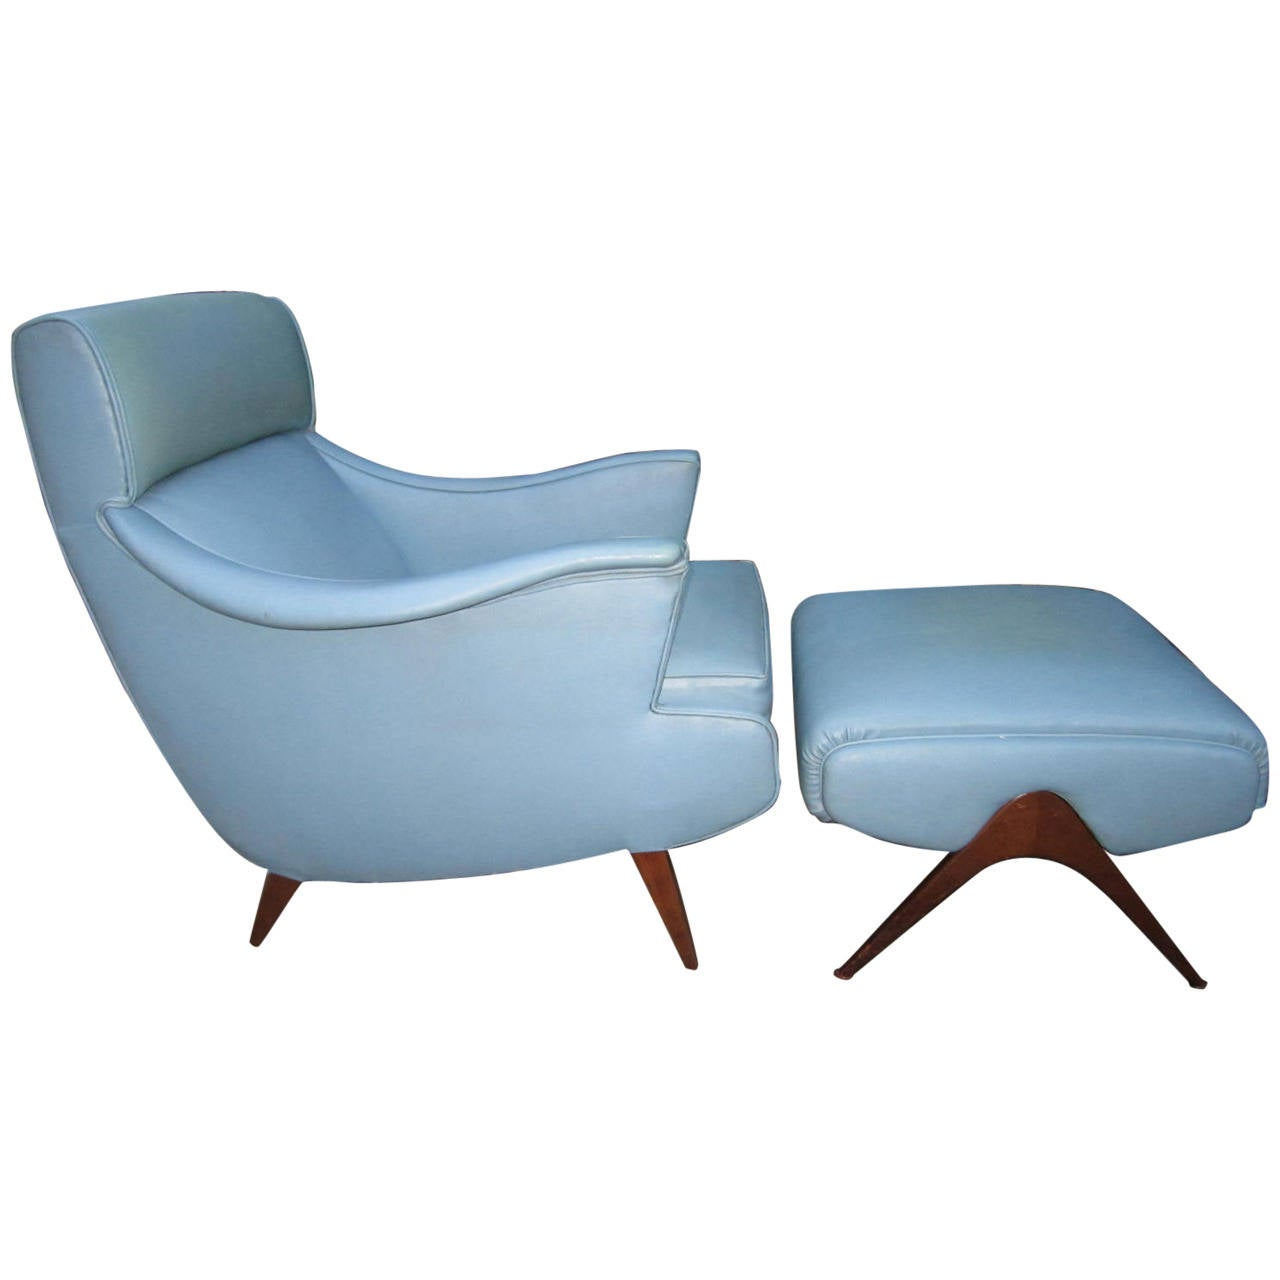 Mid Century Modern Lounge Chairs Exciting Mid Century Modern Kagan Inspired Lounge Chair